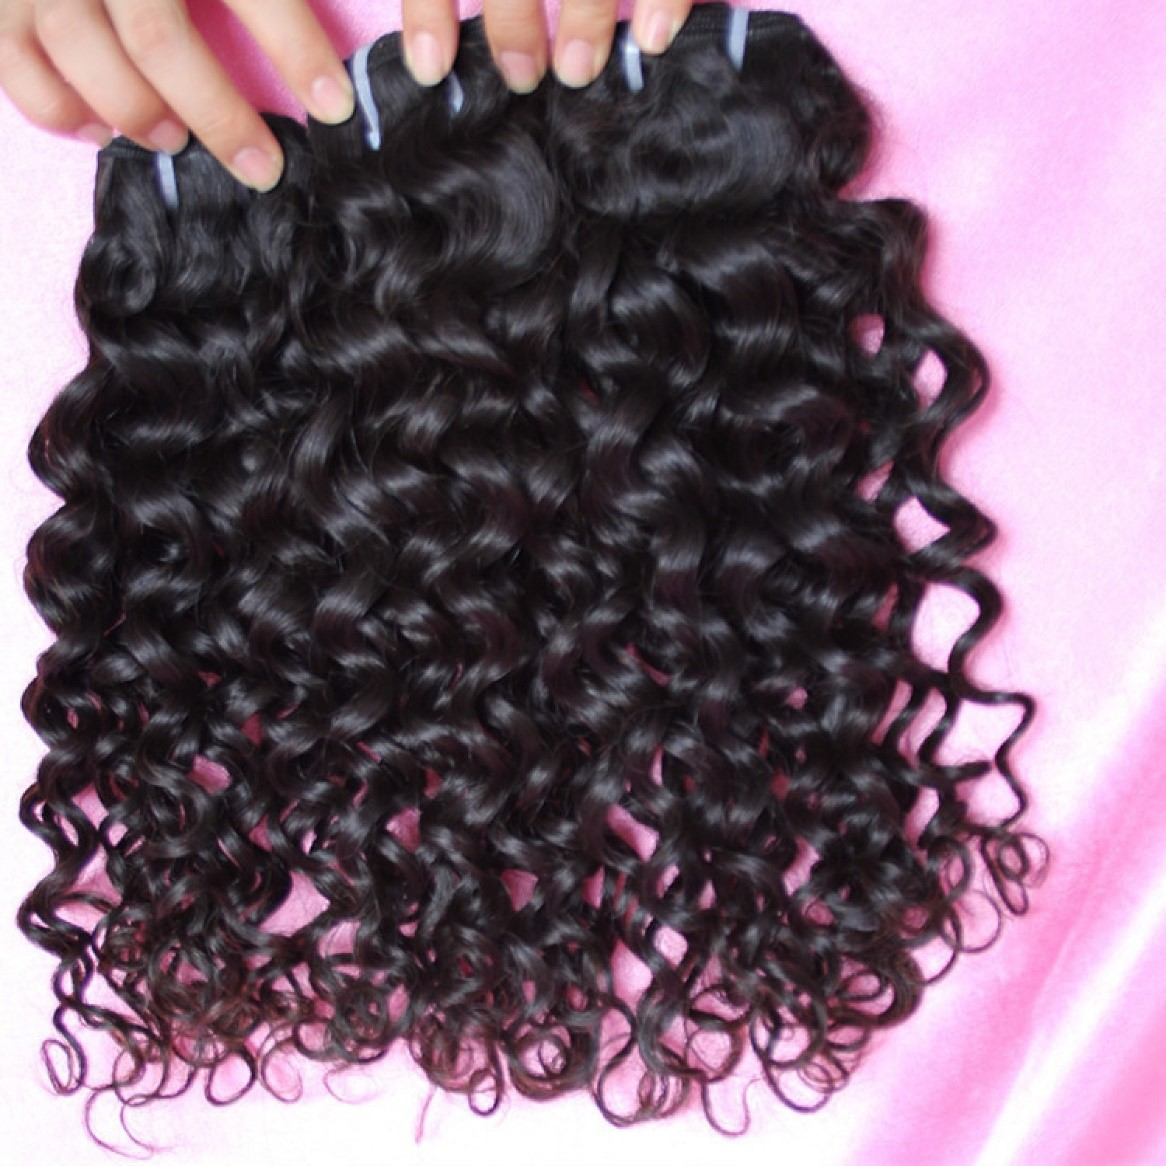 Hair Standard Of 20 Inch Curly Hair Weave